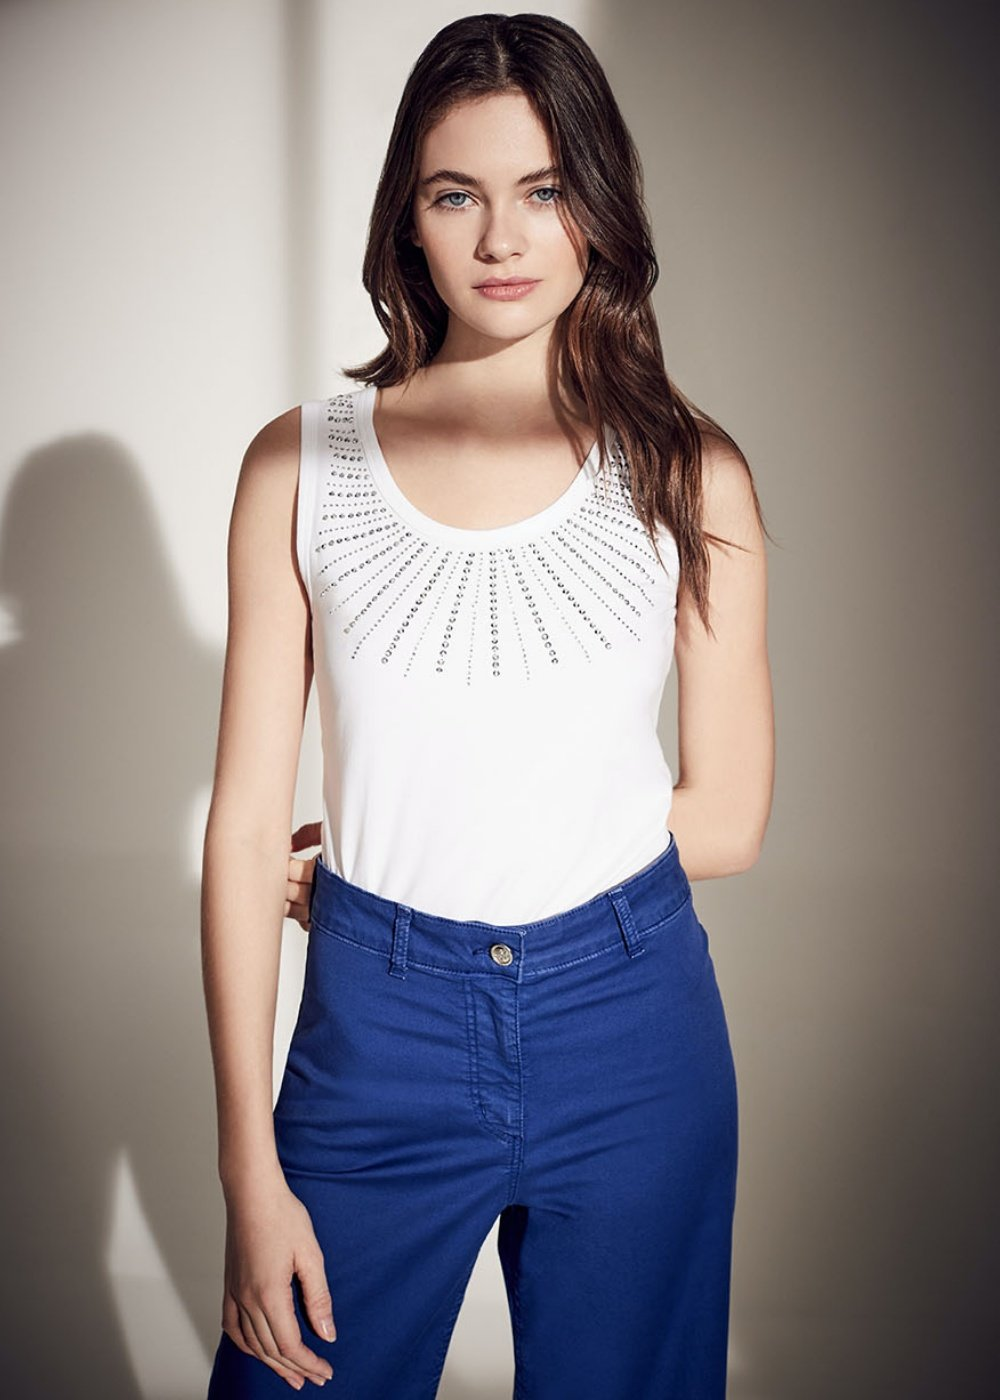 Torn top with rhinestone embroidery - White - Woman